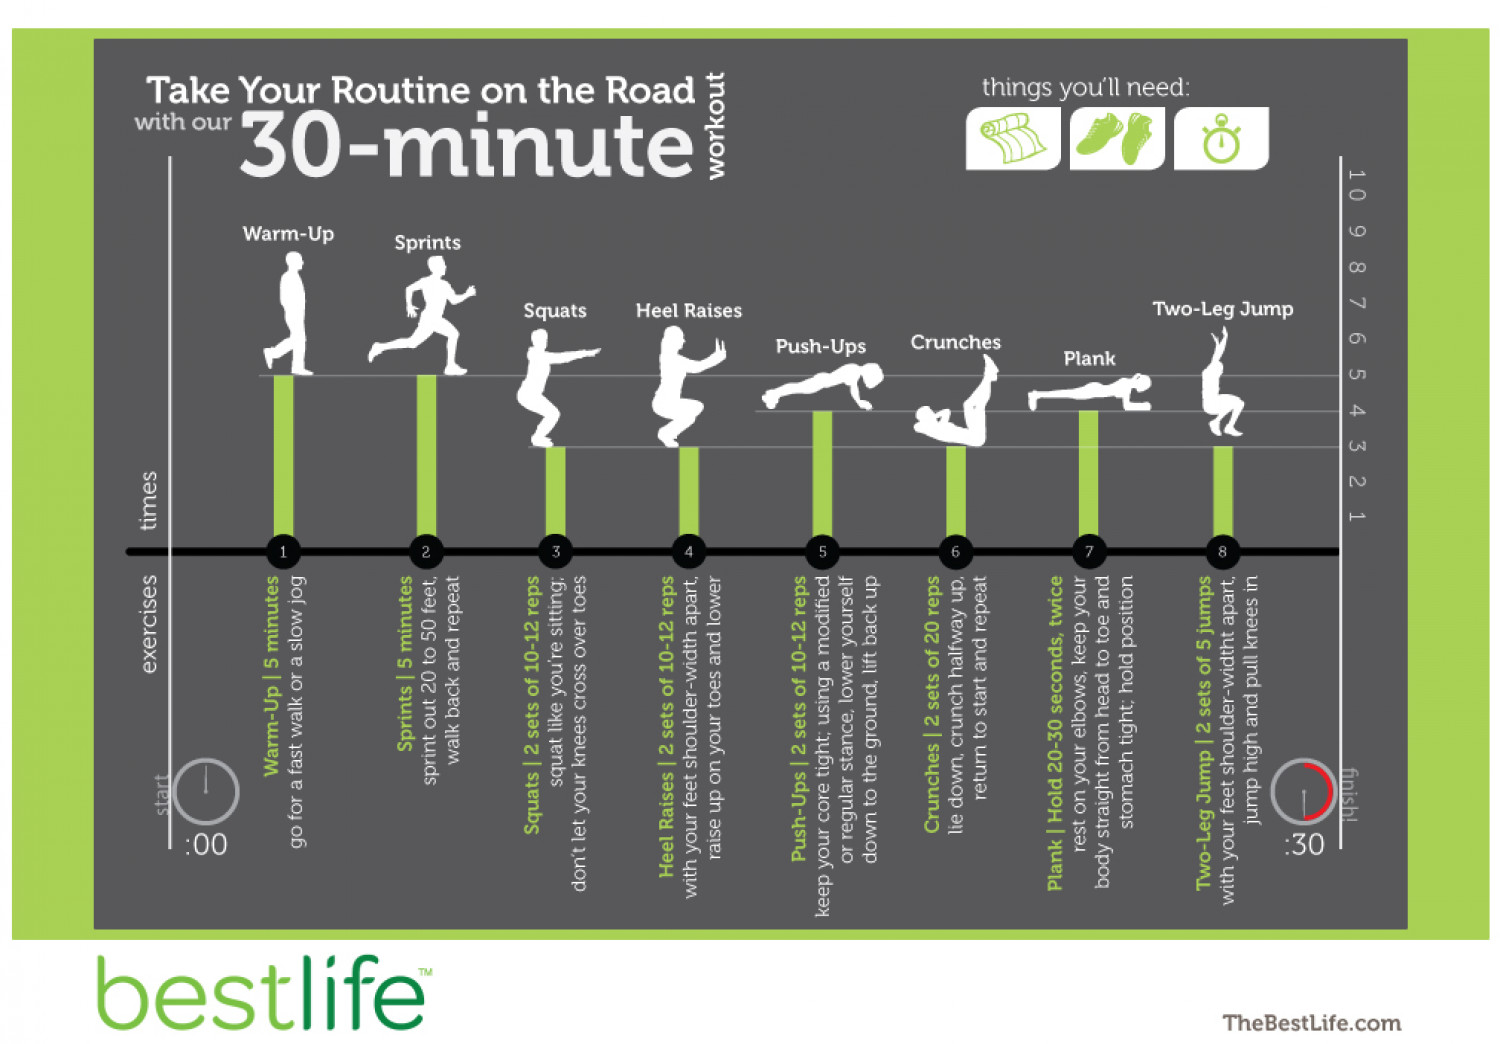 Take Your Routine on the Road with Our 30-Minute Workout Infographic